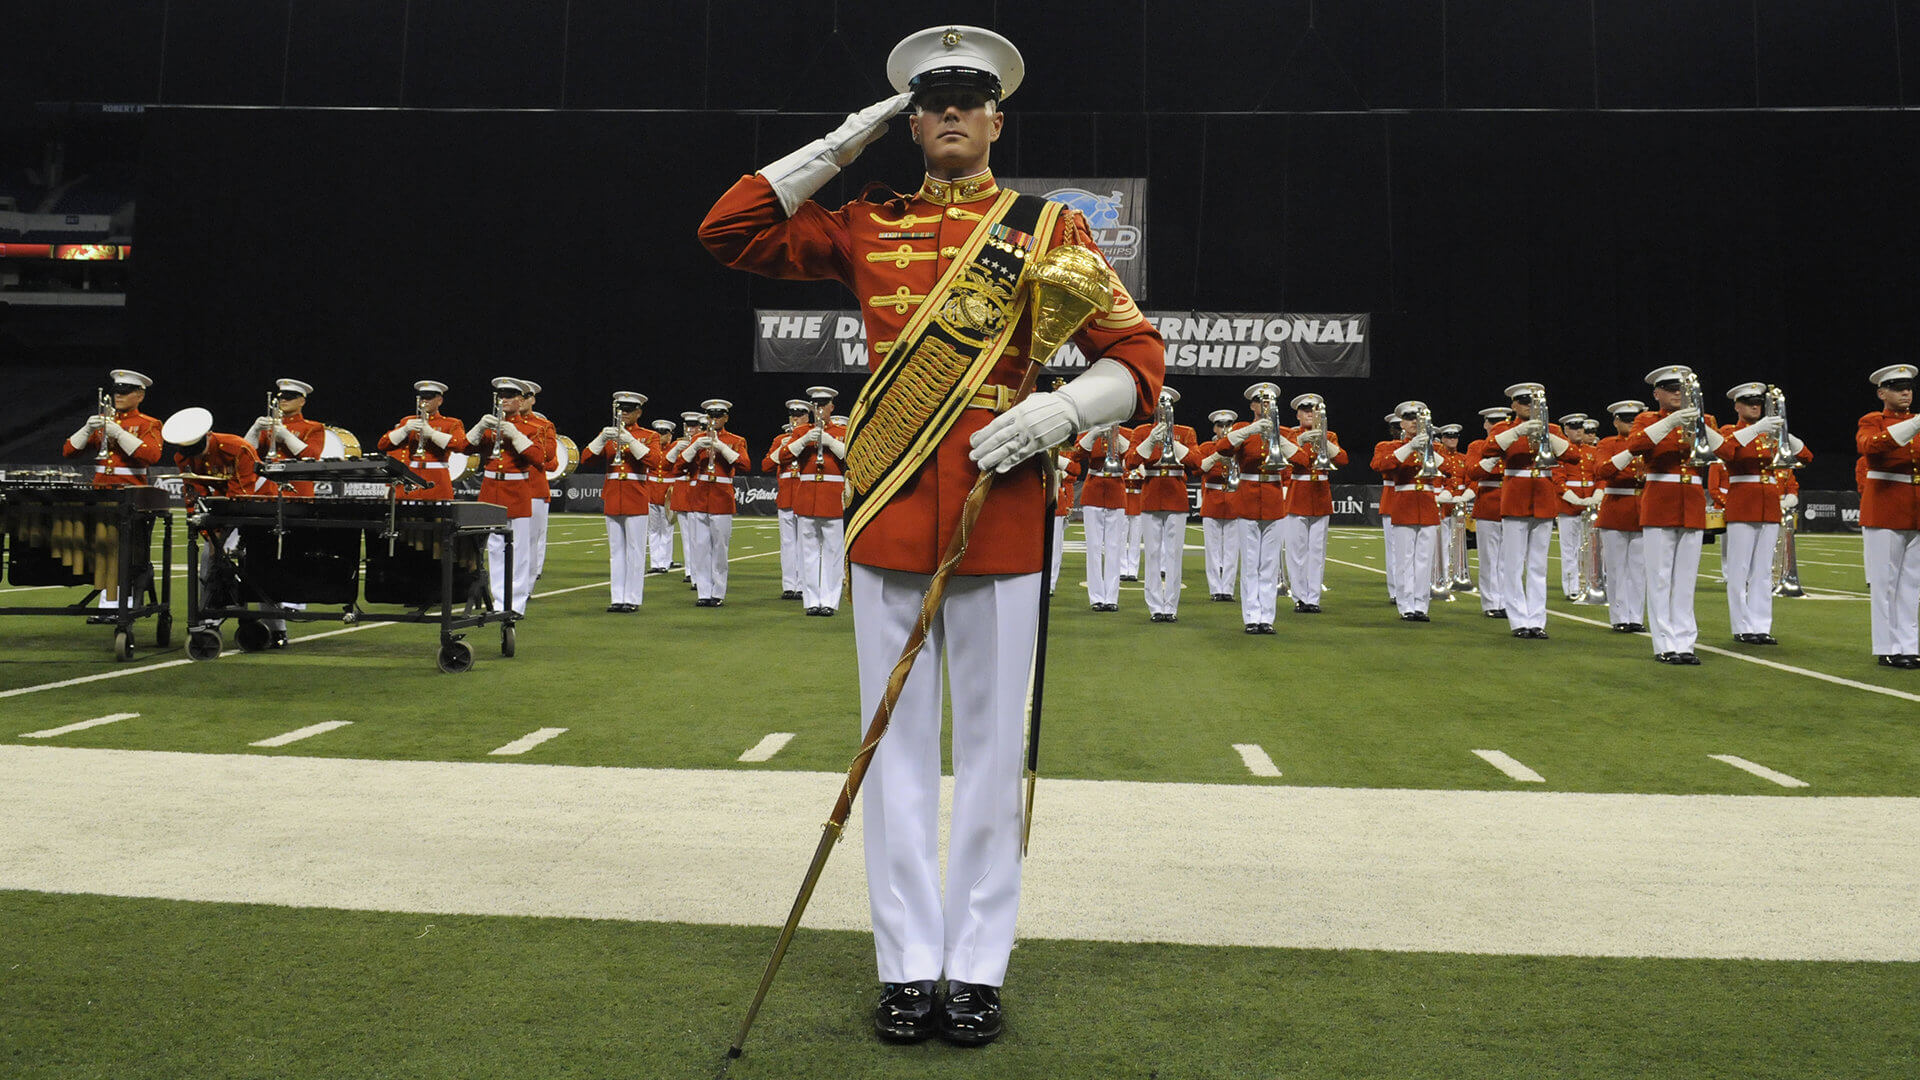 'The Commandant's Own' at the 2016 DCI Finals